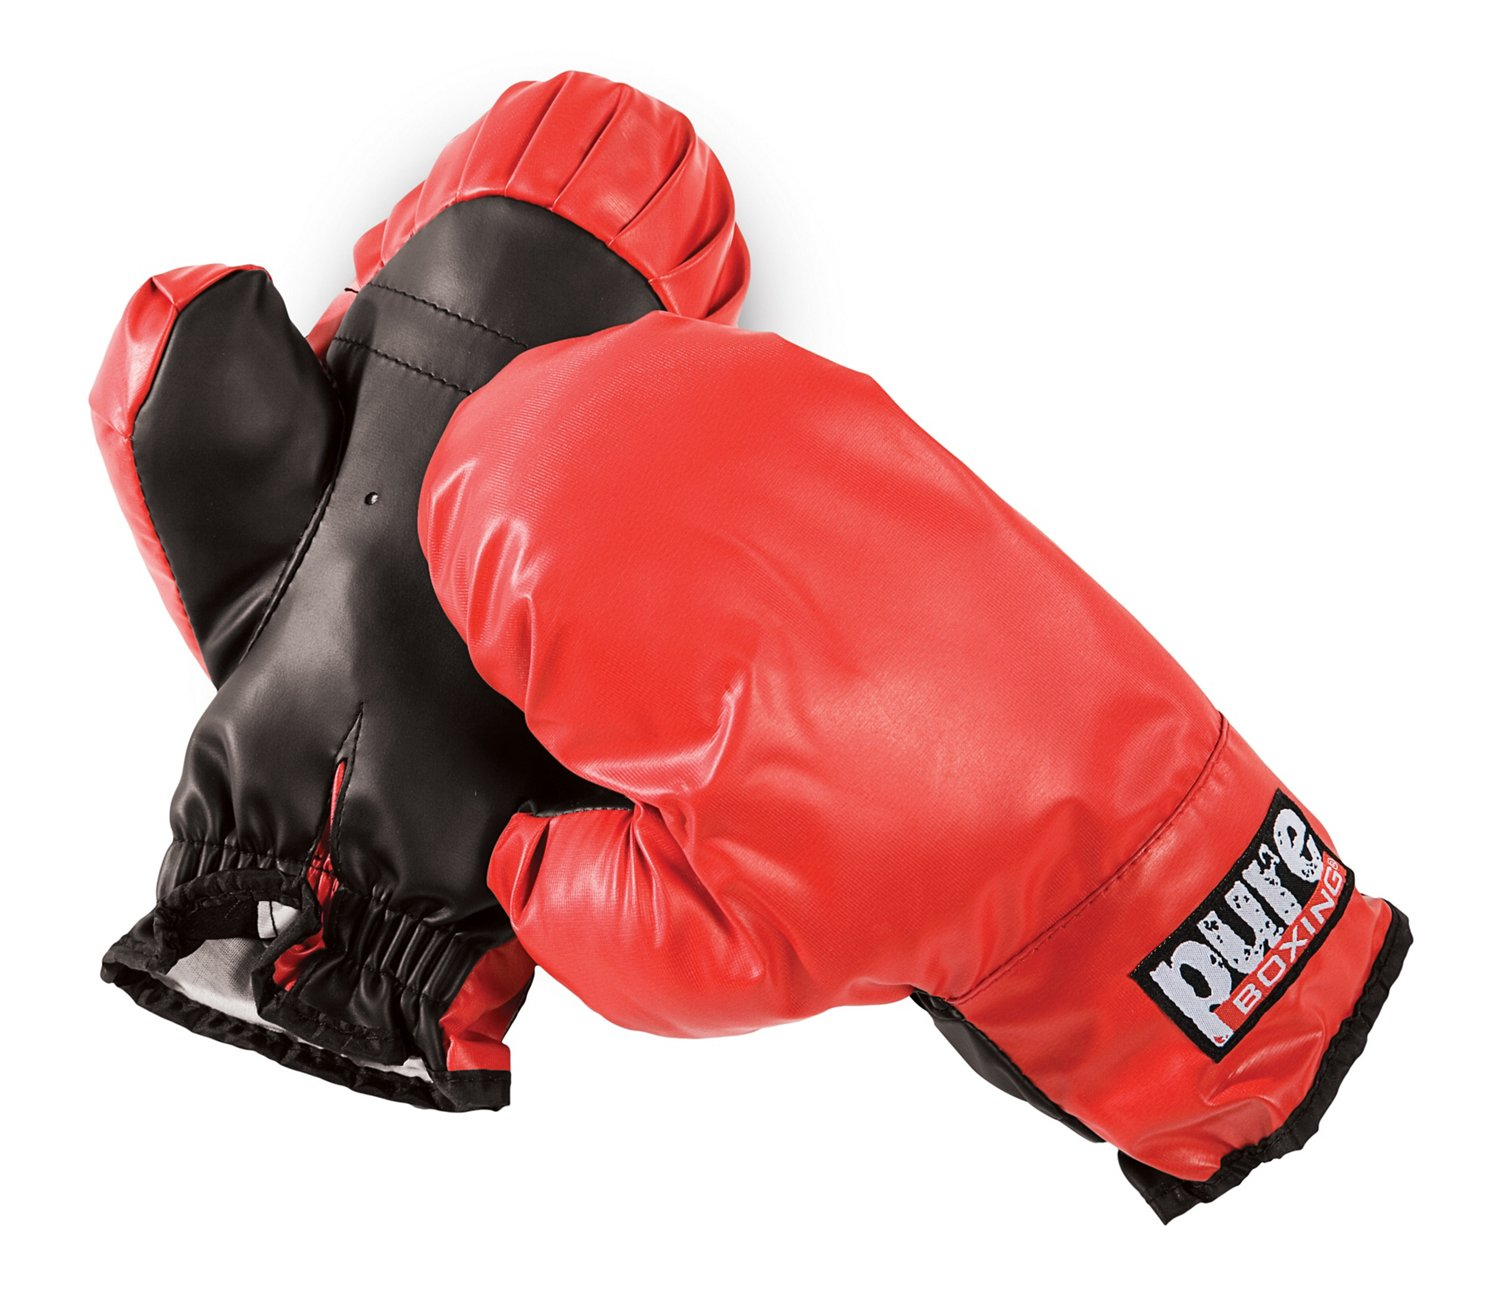 MMA Gloves & Wraps | MMA Hand Wraps, Mixed Martial Arts Gloves | Academy